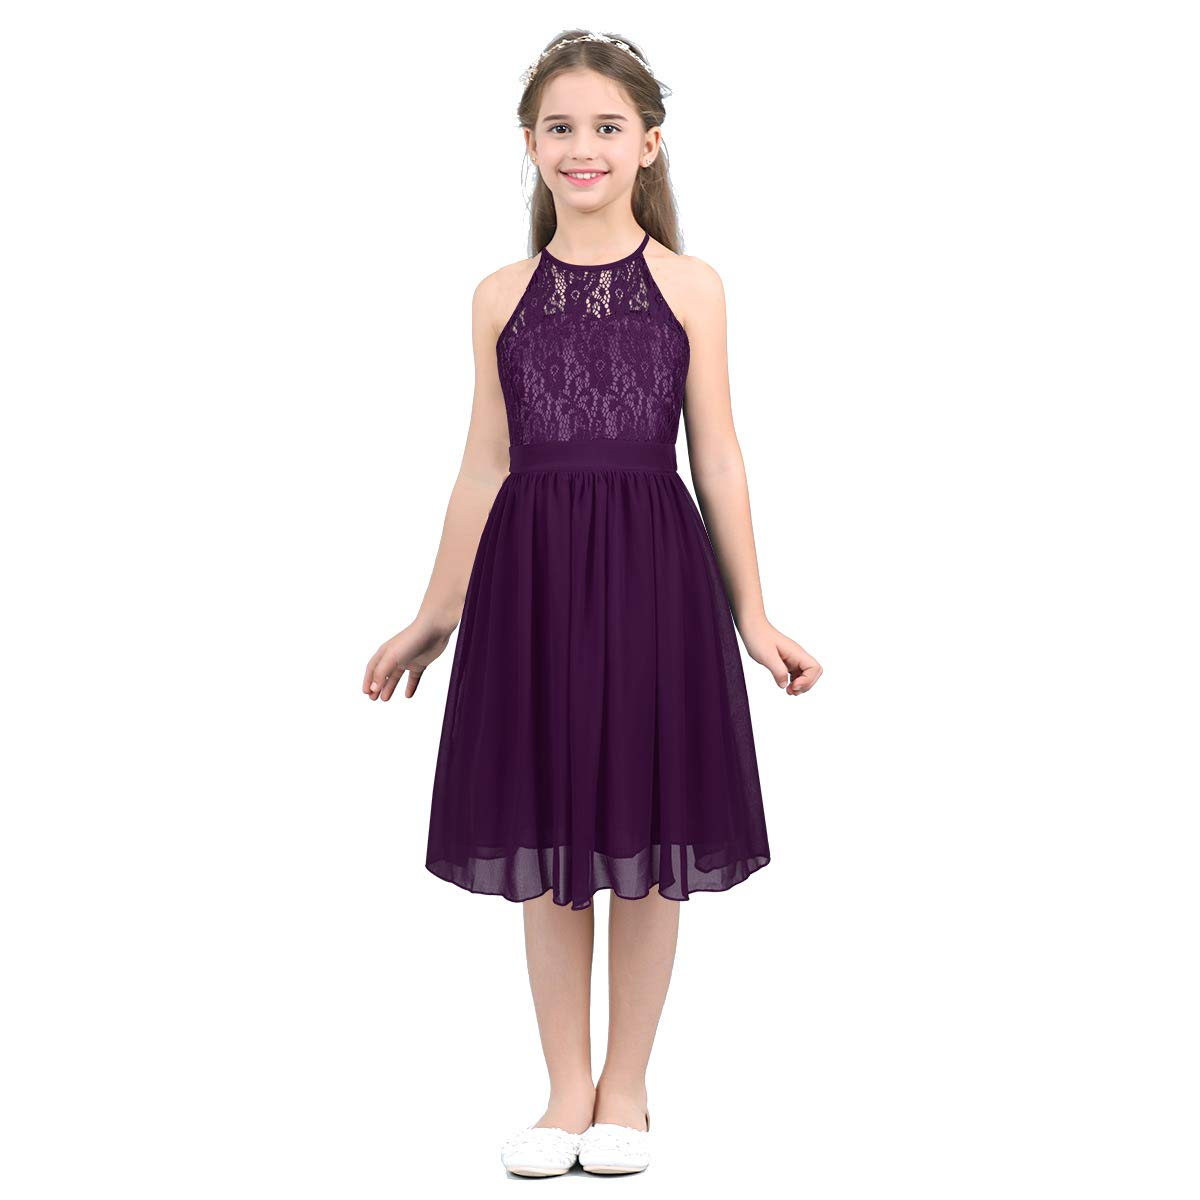 iixpin Kids Halter Neck Floral Lace Chiffon Flower Girls Dress Bridesmaid Wedding Pageant Formal Evening Gown